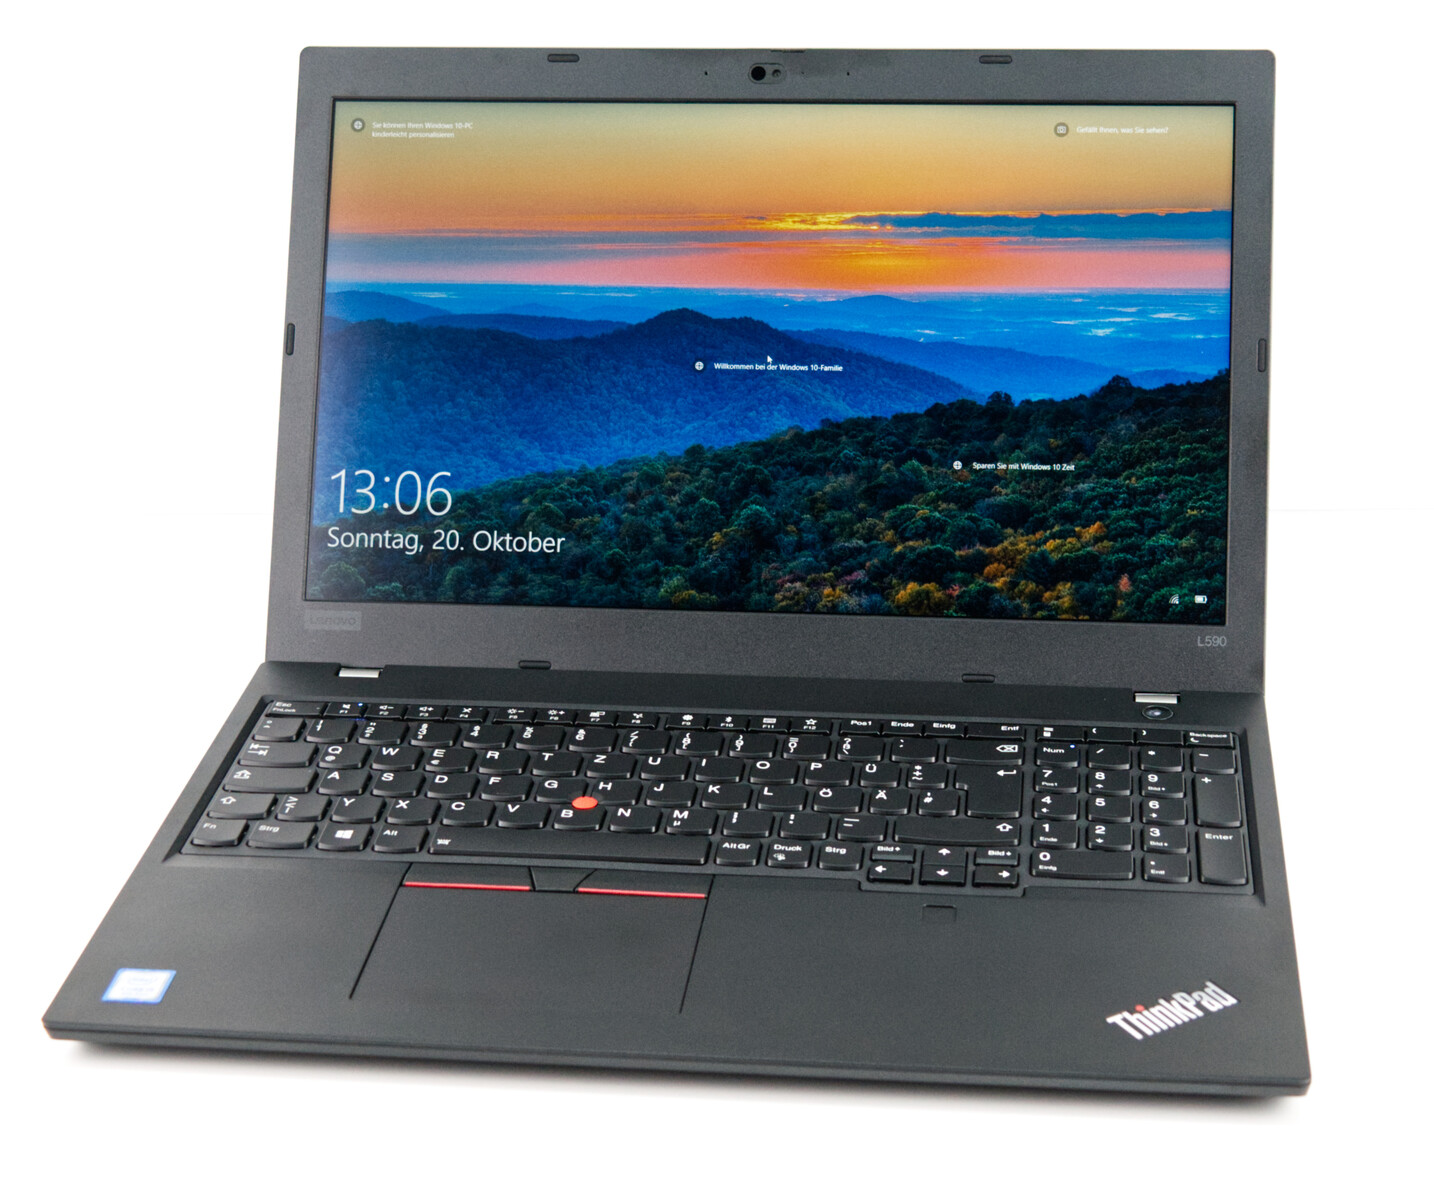 Lenovo Thinkpad L590 A Budget Business Laptop That Falls Short Of Expectations Notebookcheck Net News